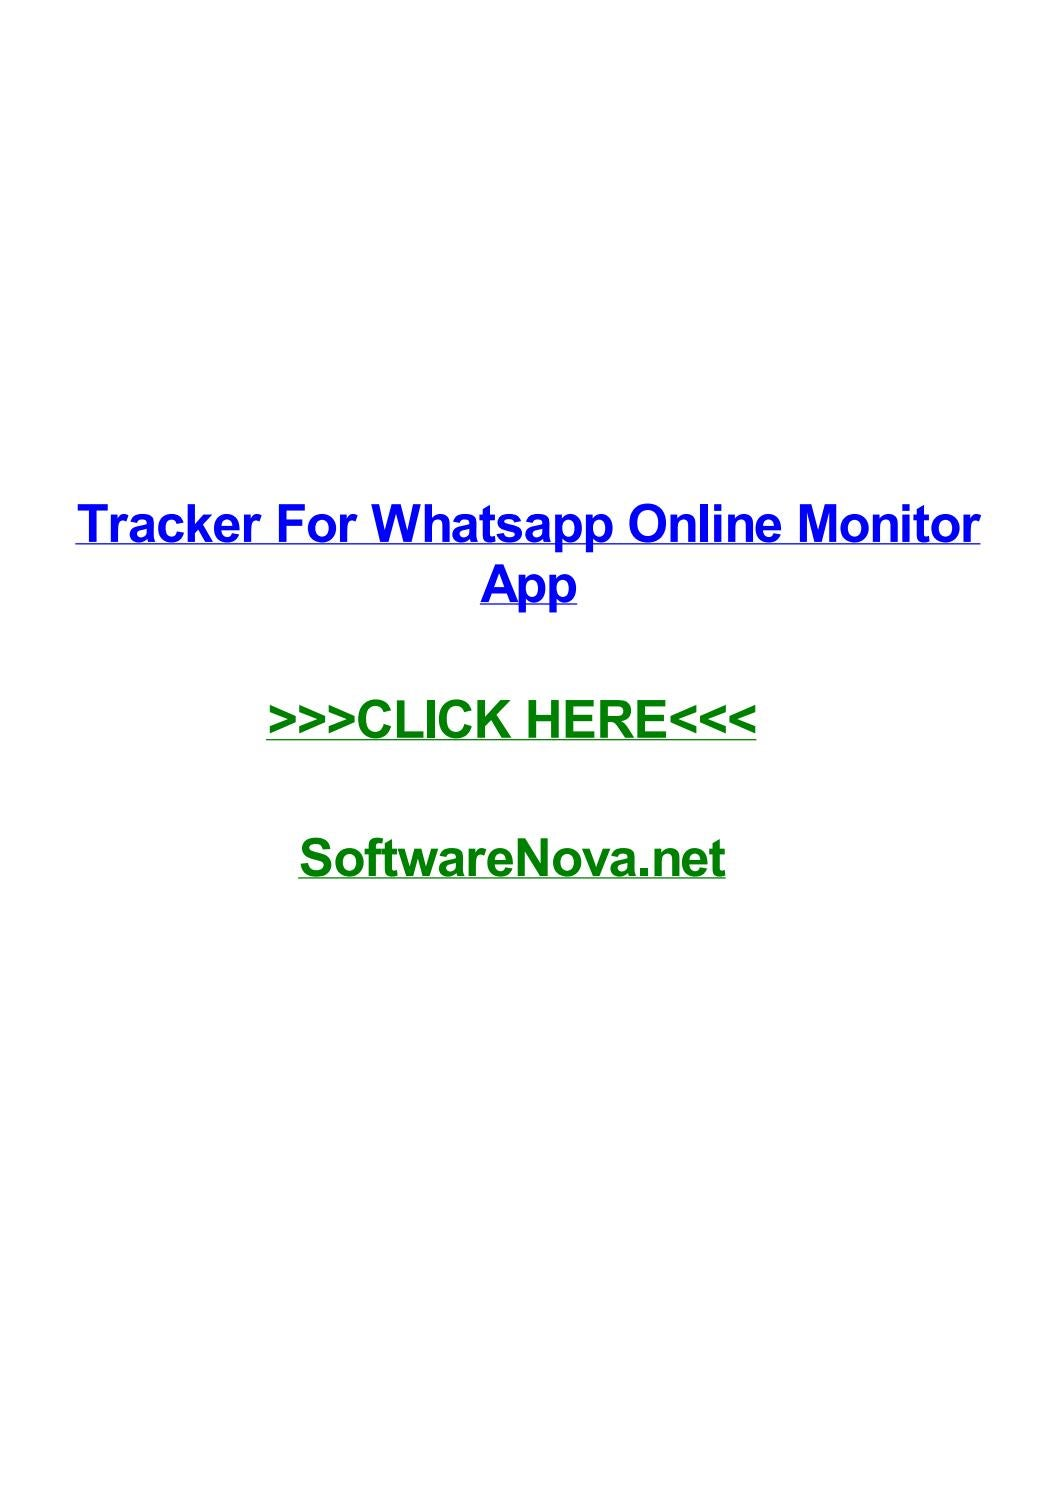 Tracker for whatsapp online monitor app by rodriqueonyur - issuu